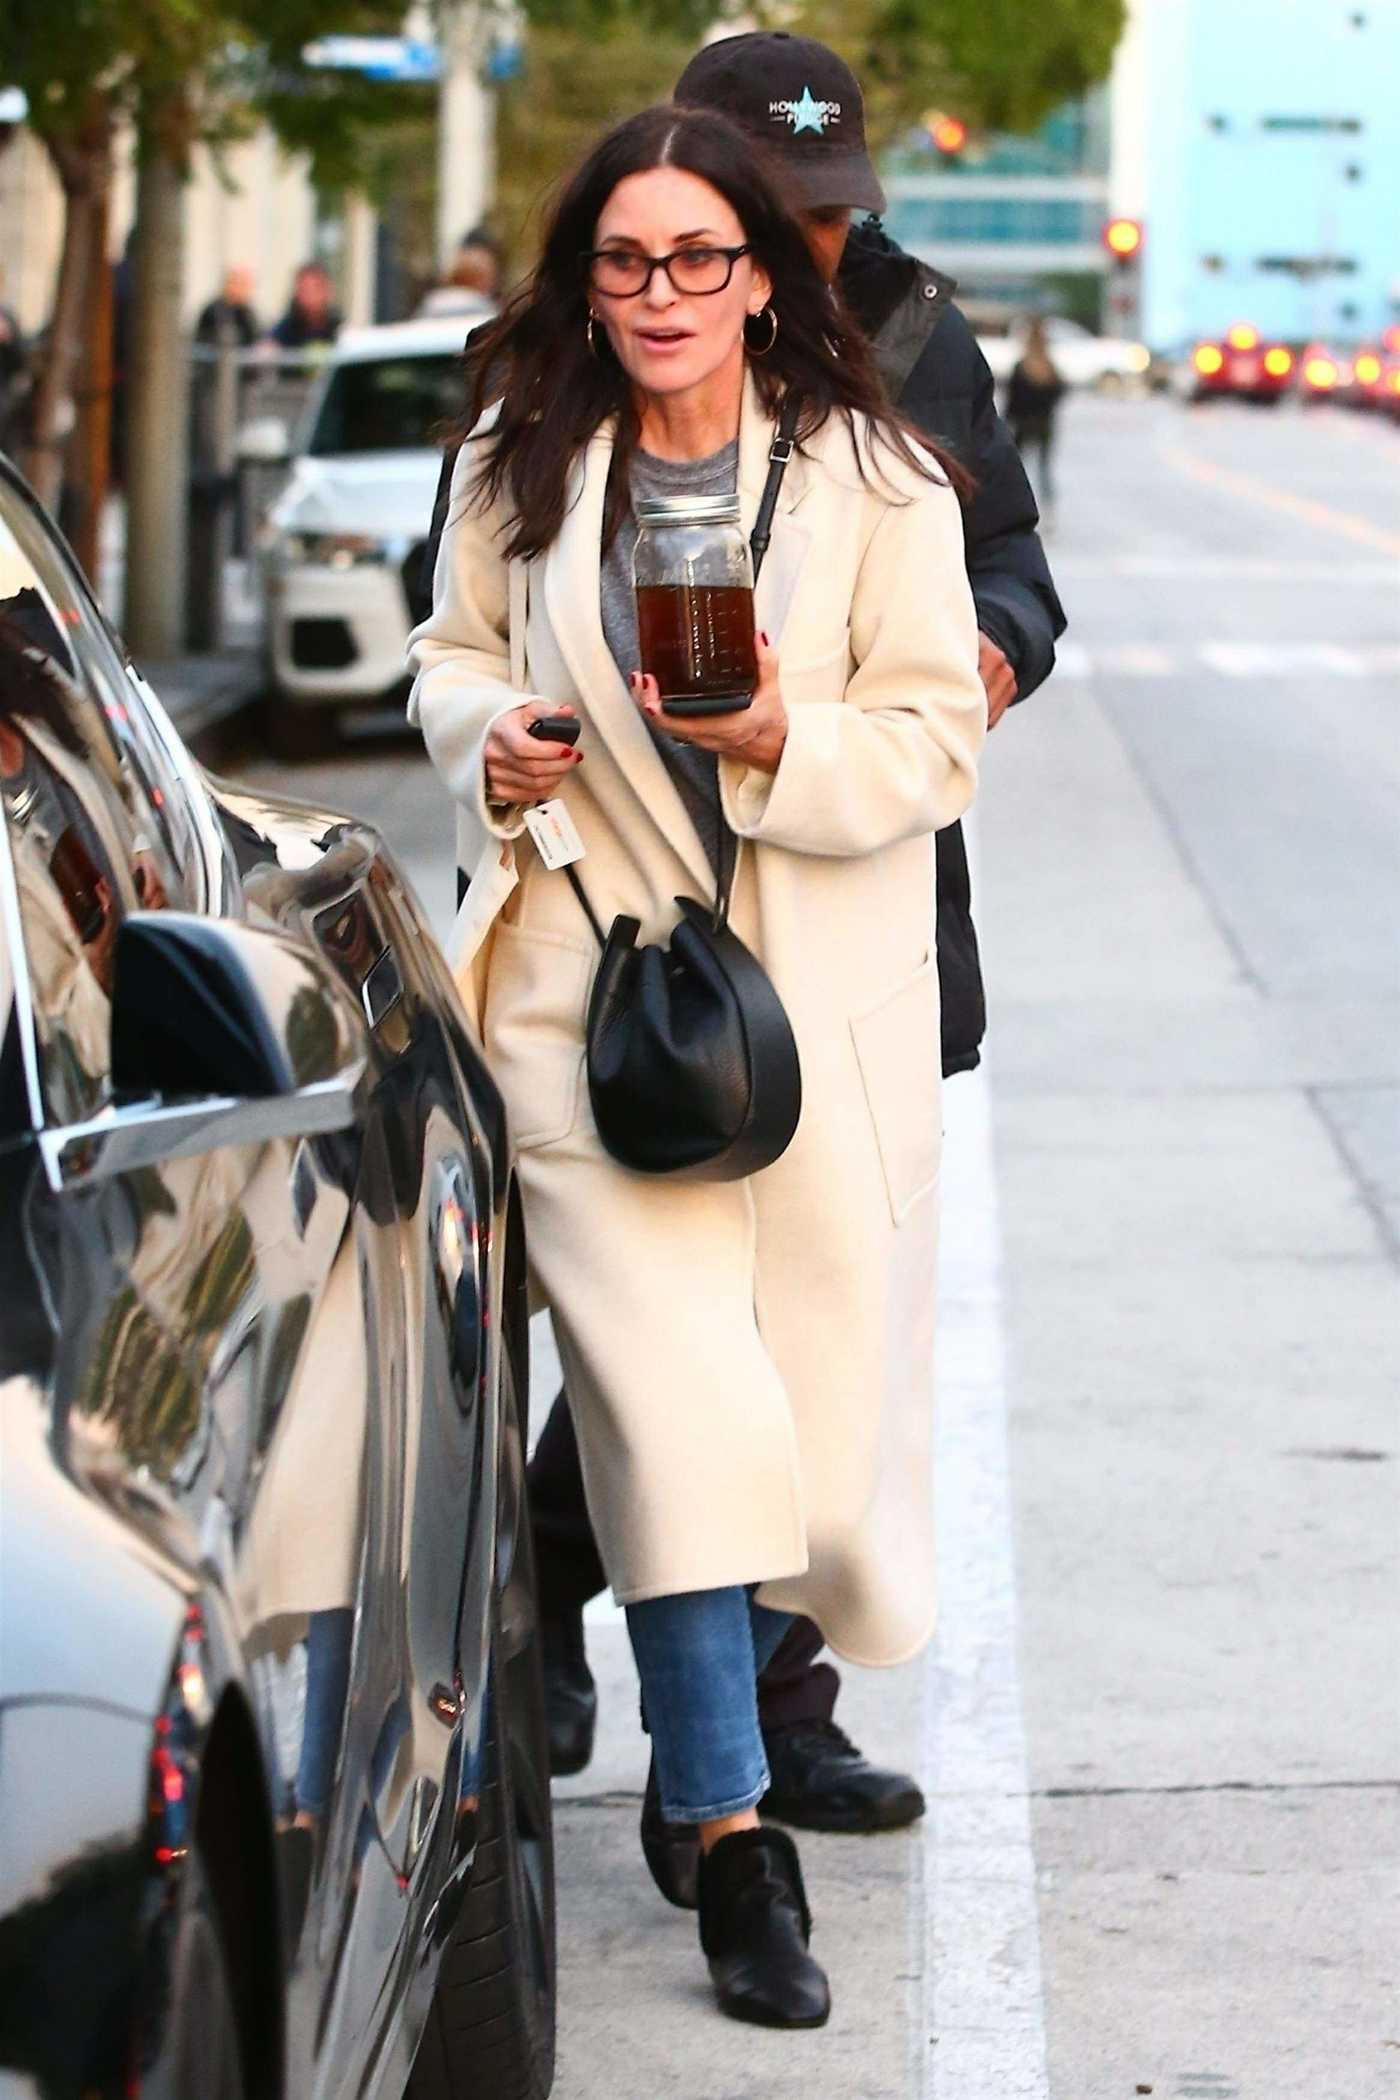 Courteney Cox in a White Coat Out for a Shopping Trip with a Friend in West Hollywood 12/26/2018